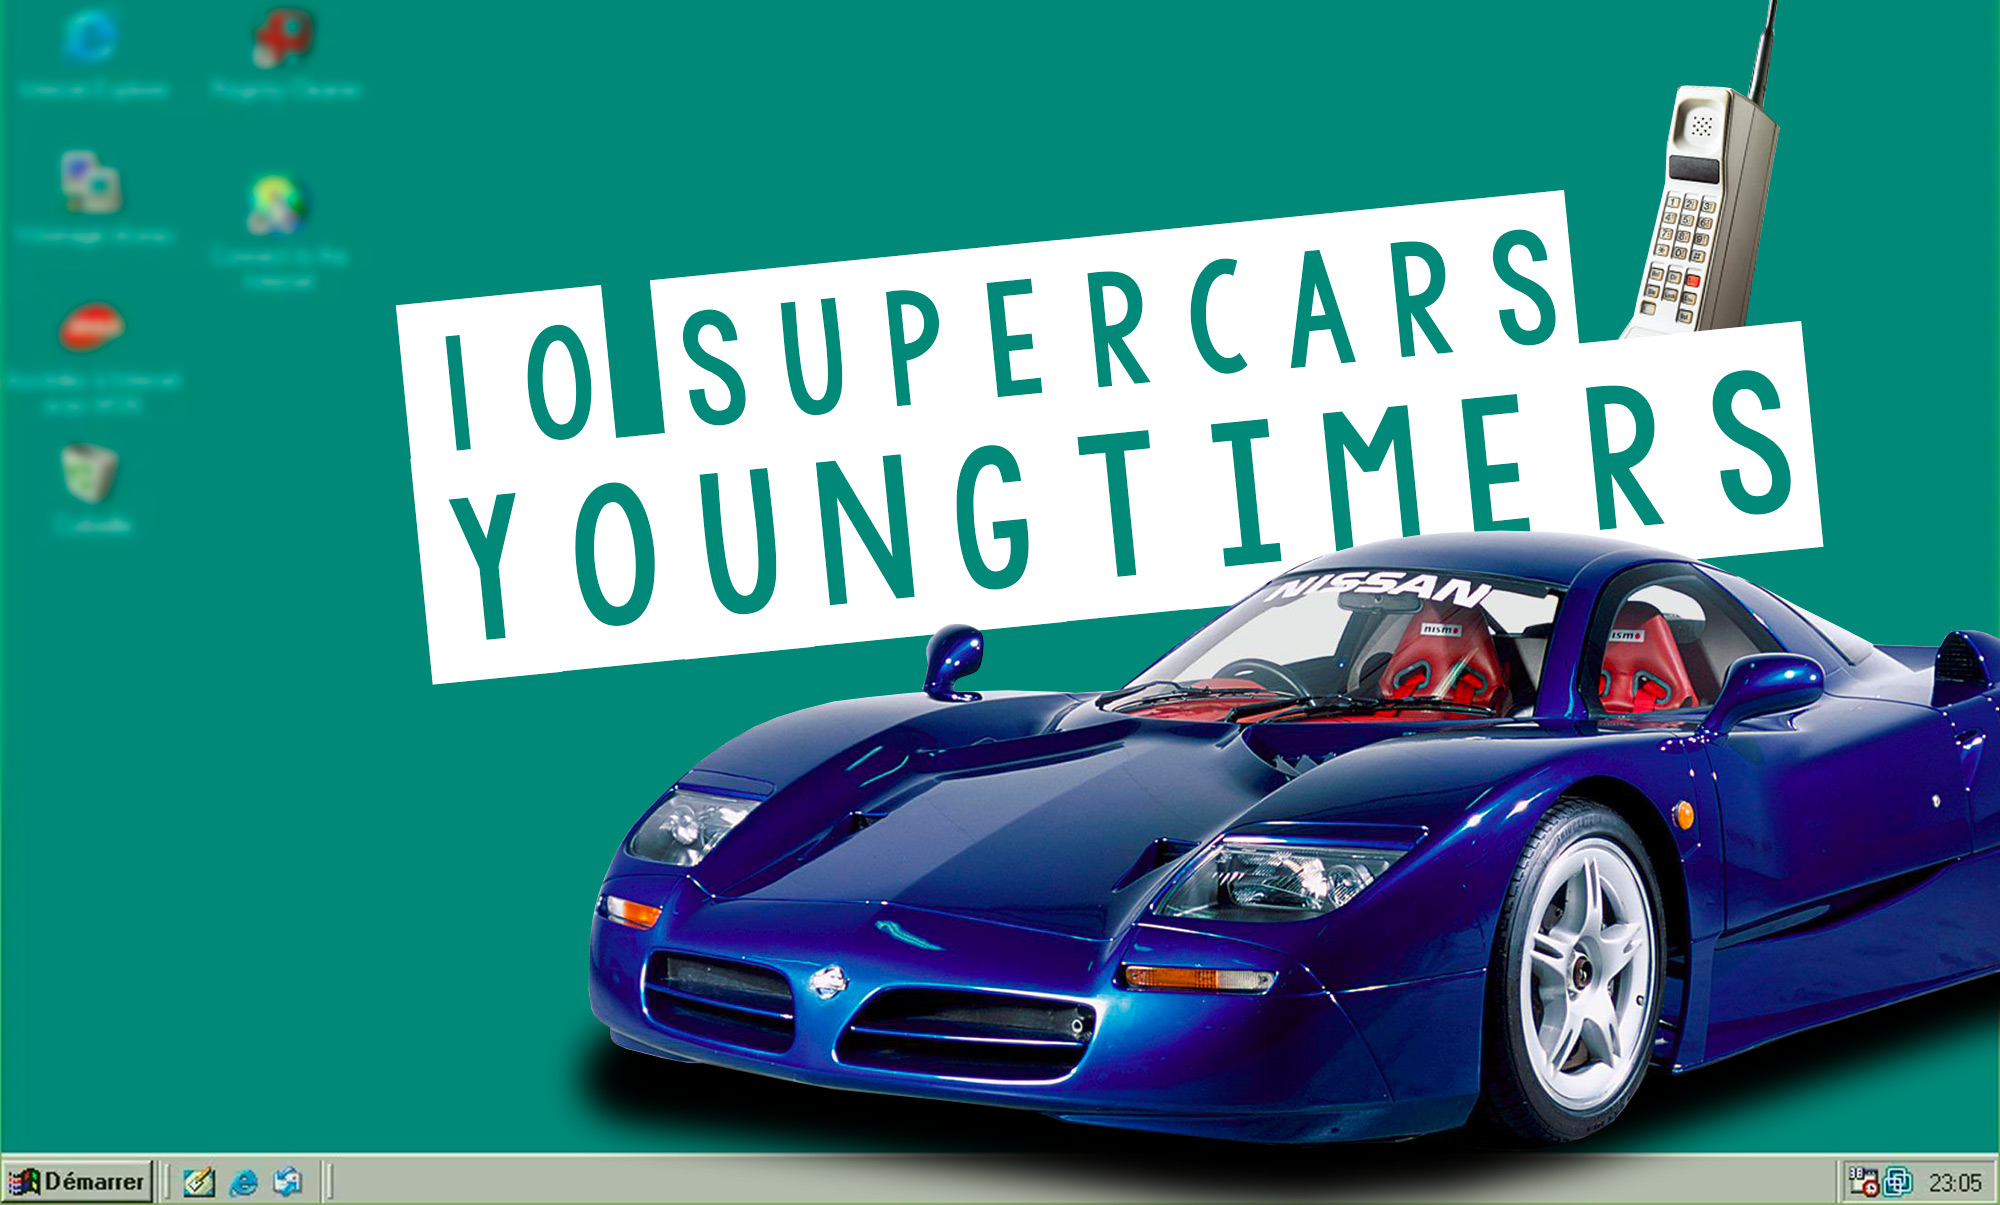 Supercars youngtimer